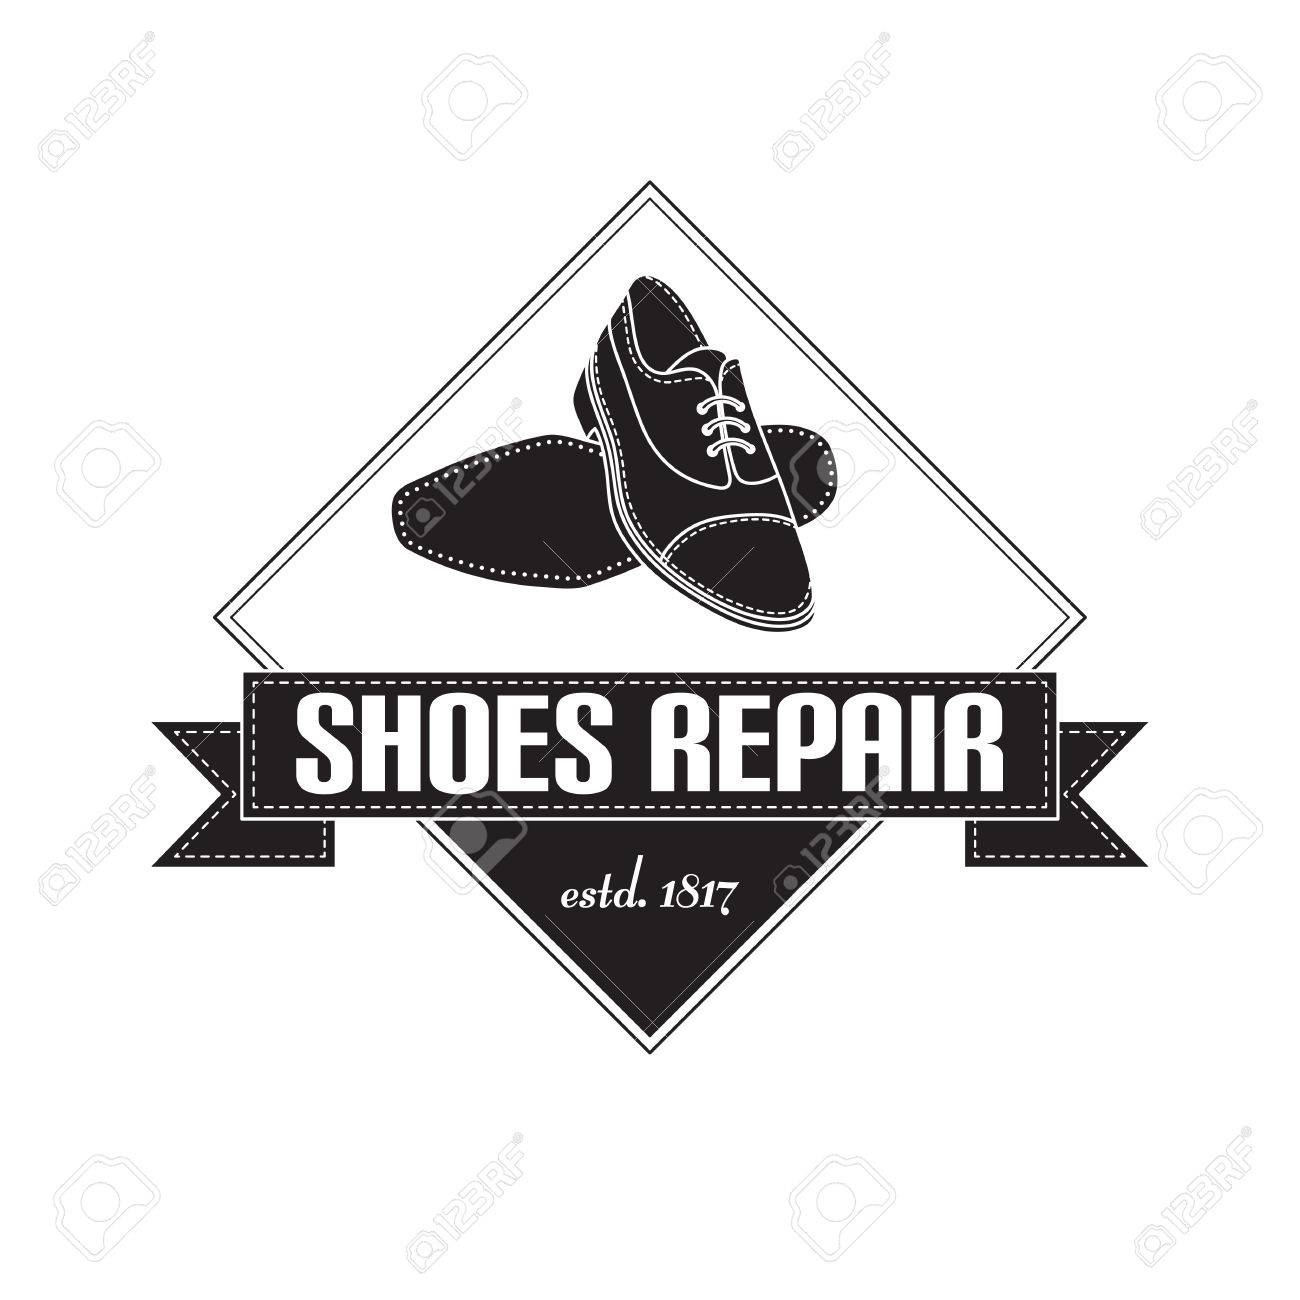 e310f5917a76 Vector - vector image of logo of shoe repair services. Trendy concept for  workshop repair or restoration of leather goods